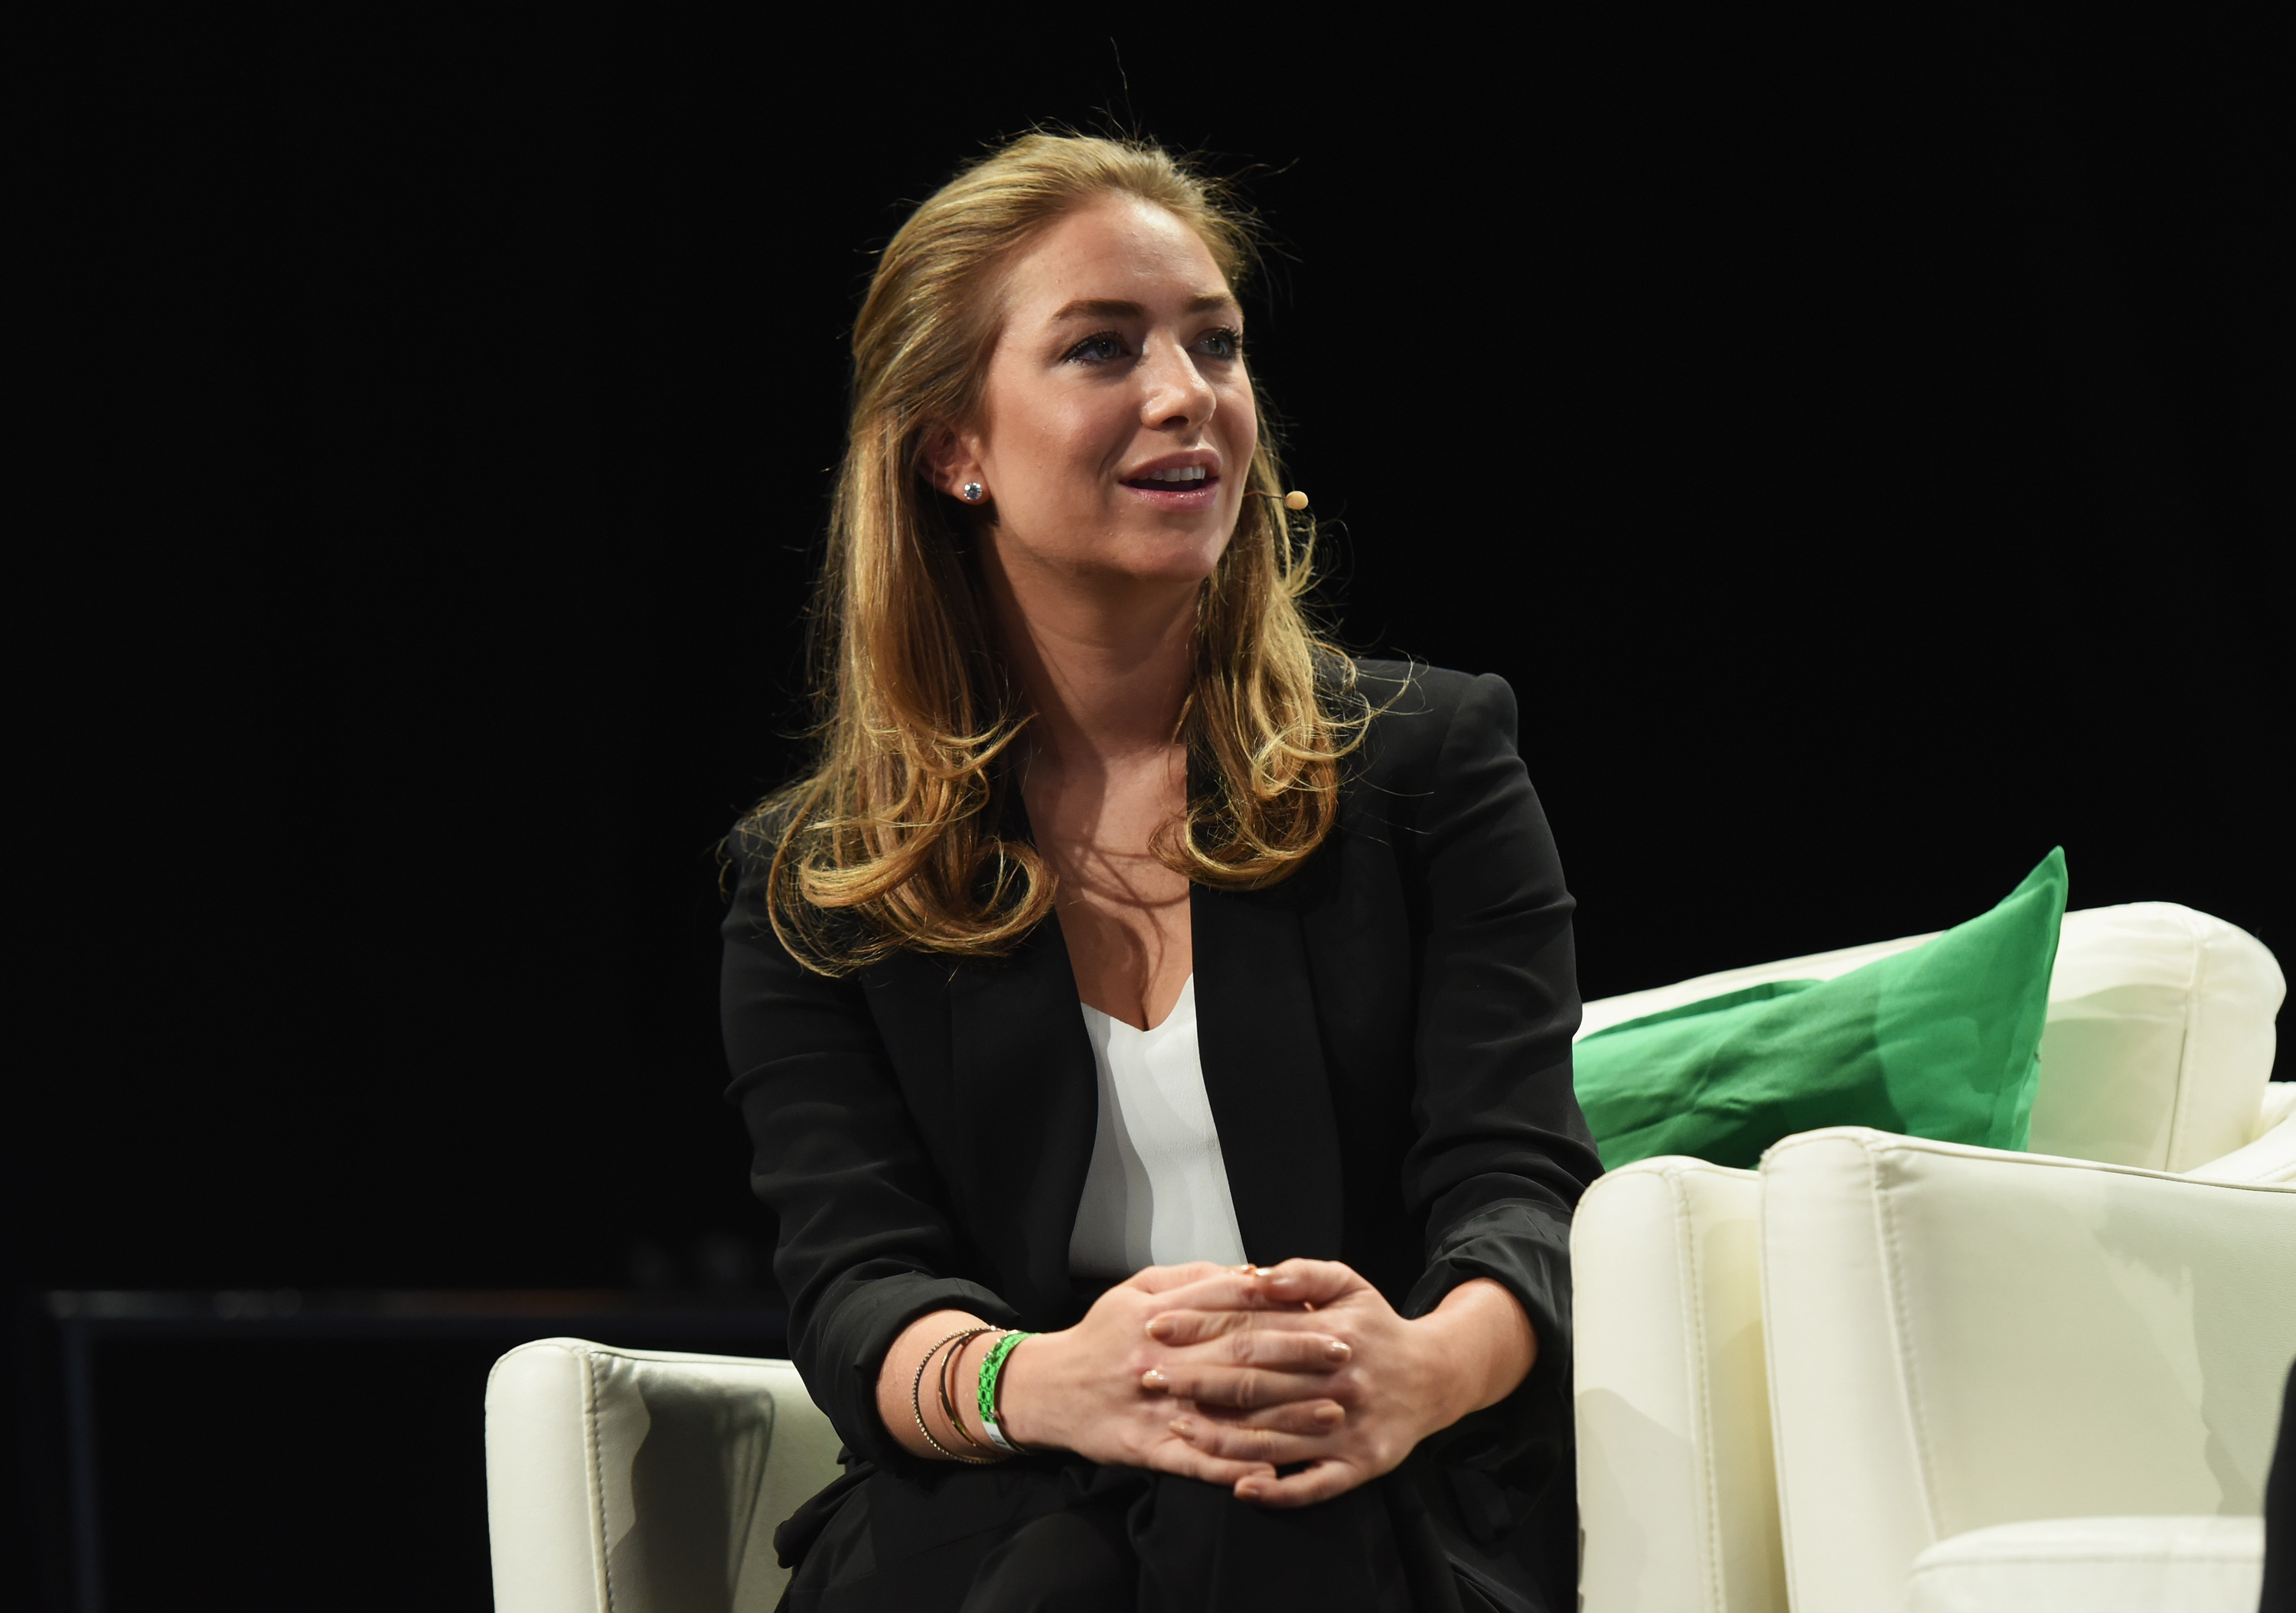 Whitney Wolfe Herd Helps Texas Introduce Unsolicited Sexual Pictures Bill